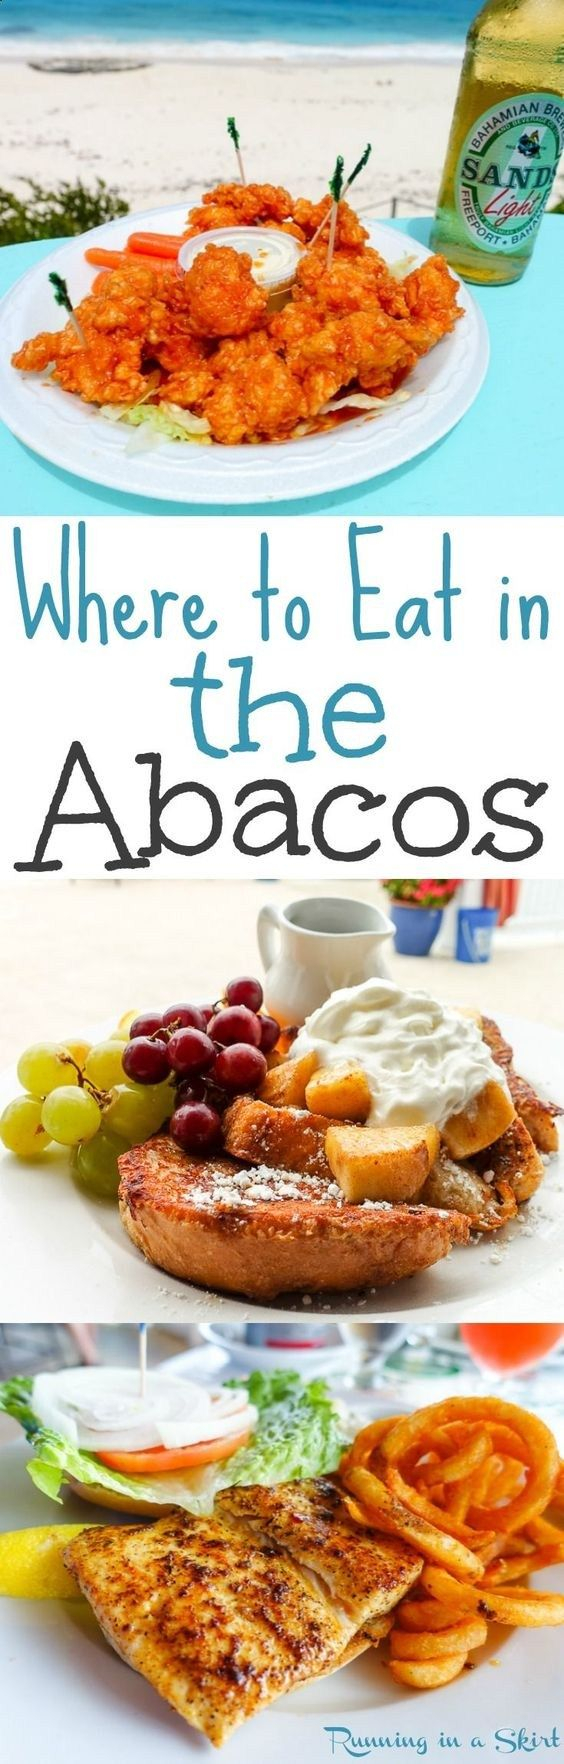 Where to Eat in the Abacos! The best restaurants, roadside stands and dive bars in the Abaco in the Bahamas. Great picks on the islands including lots of beach views... including Hope Town/ Elbow Cay, Marsh Harbor, Treasure Cay, Man o War Cay, Great Guana Cay, Little Harbor and Lubbers Quarters. Including Petes Pub, Nippers and Firefly Sunset Resort. / Running in a Skirt